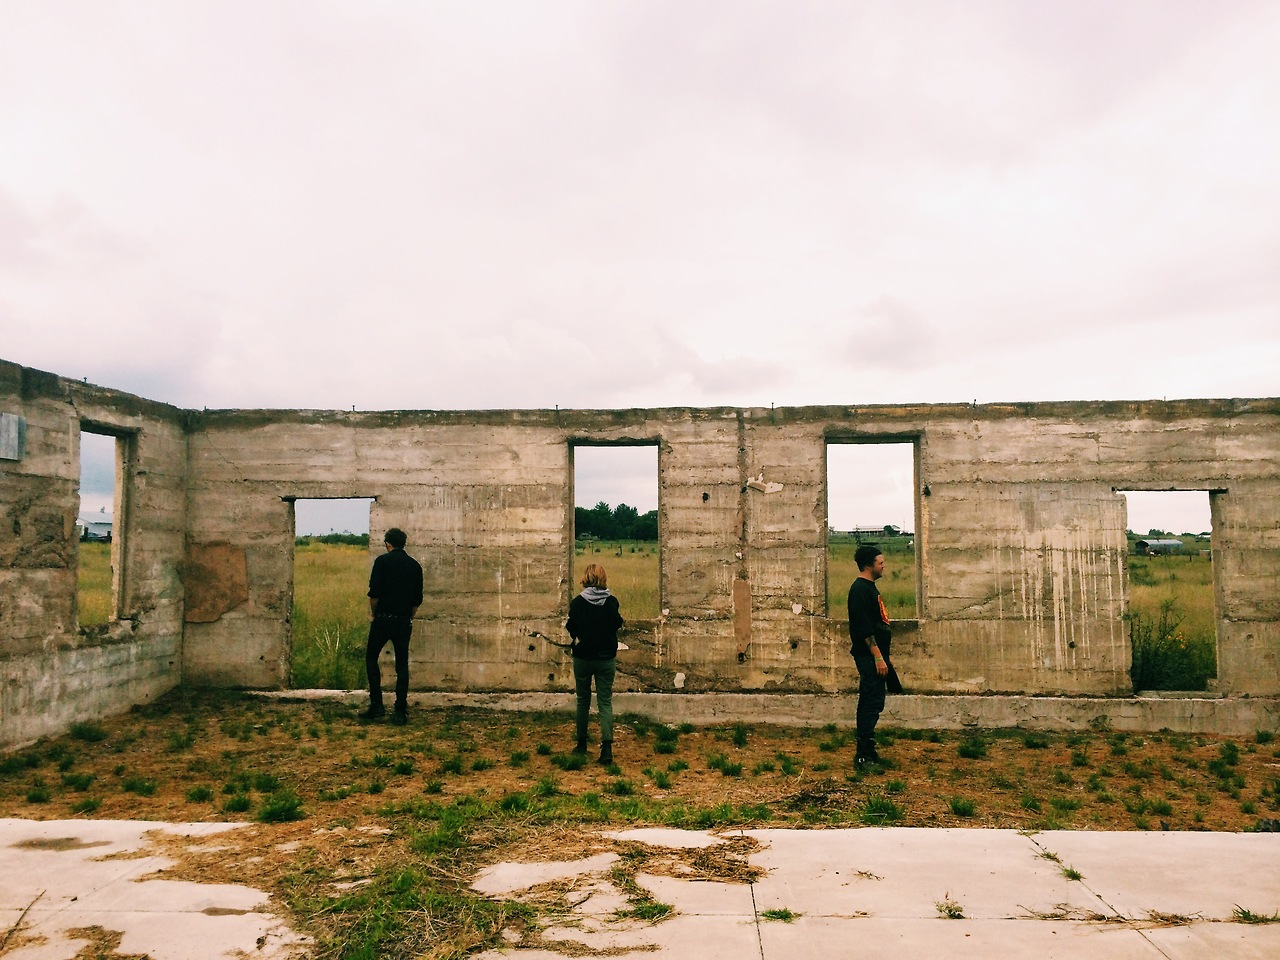 The army barack ruins. Marfa, Texas 2014